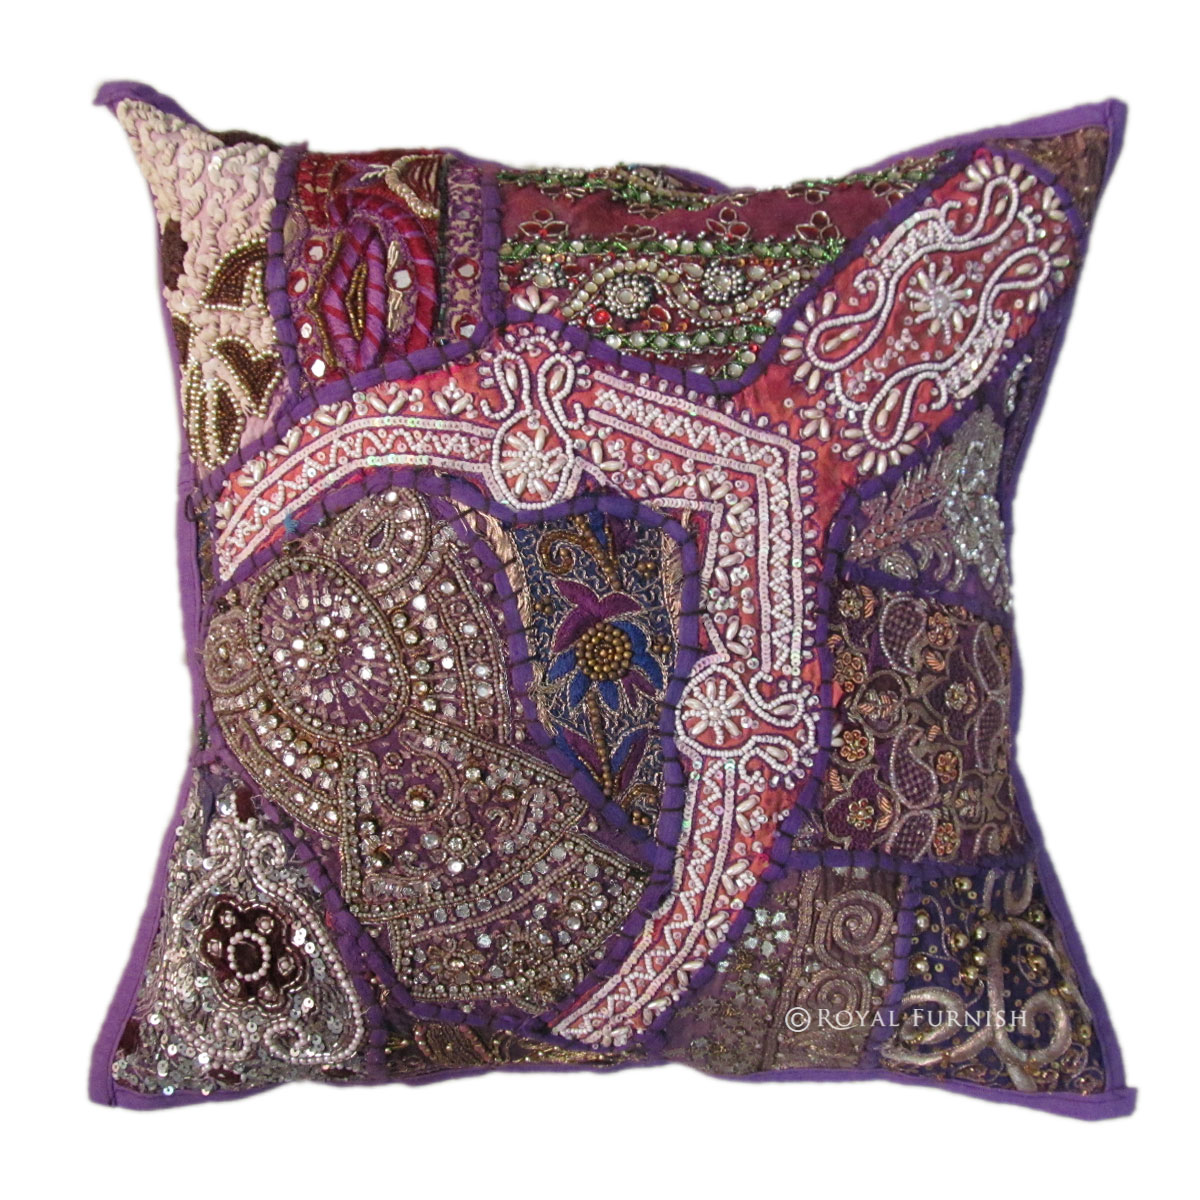 Decorative Pillows With Beads : Purple Antique Heavy Beads Embroidered Decorative Throw Pillow Case Sham - RoyalFurnish.com